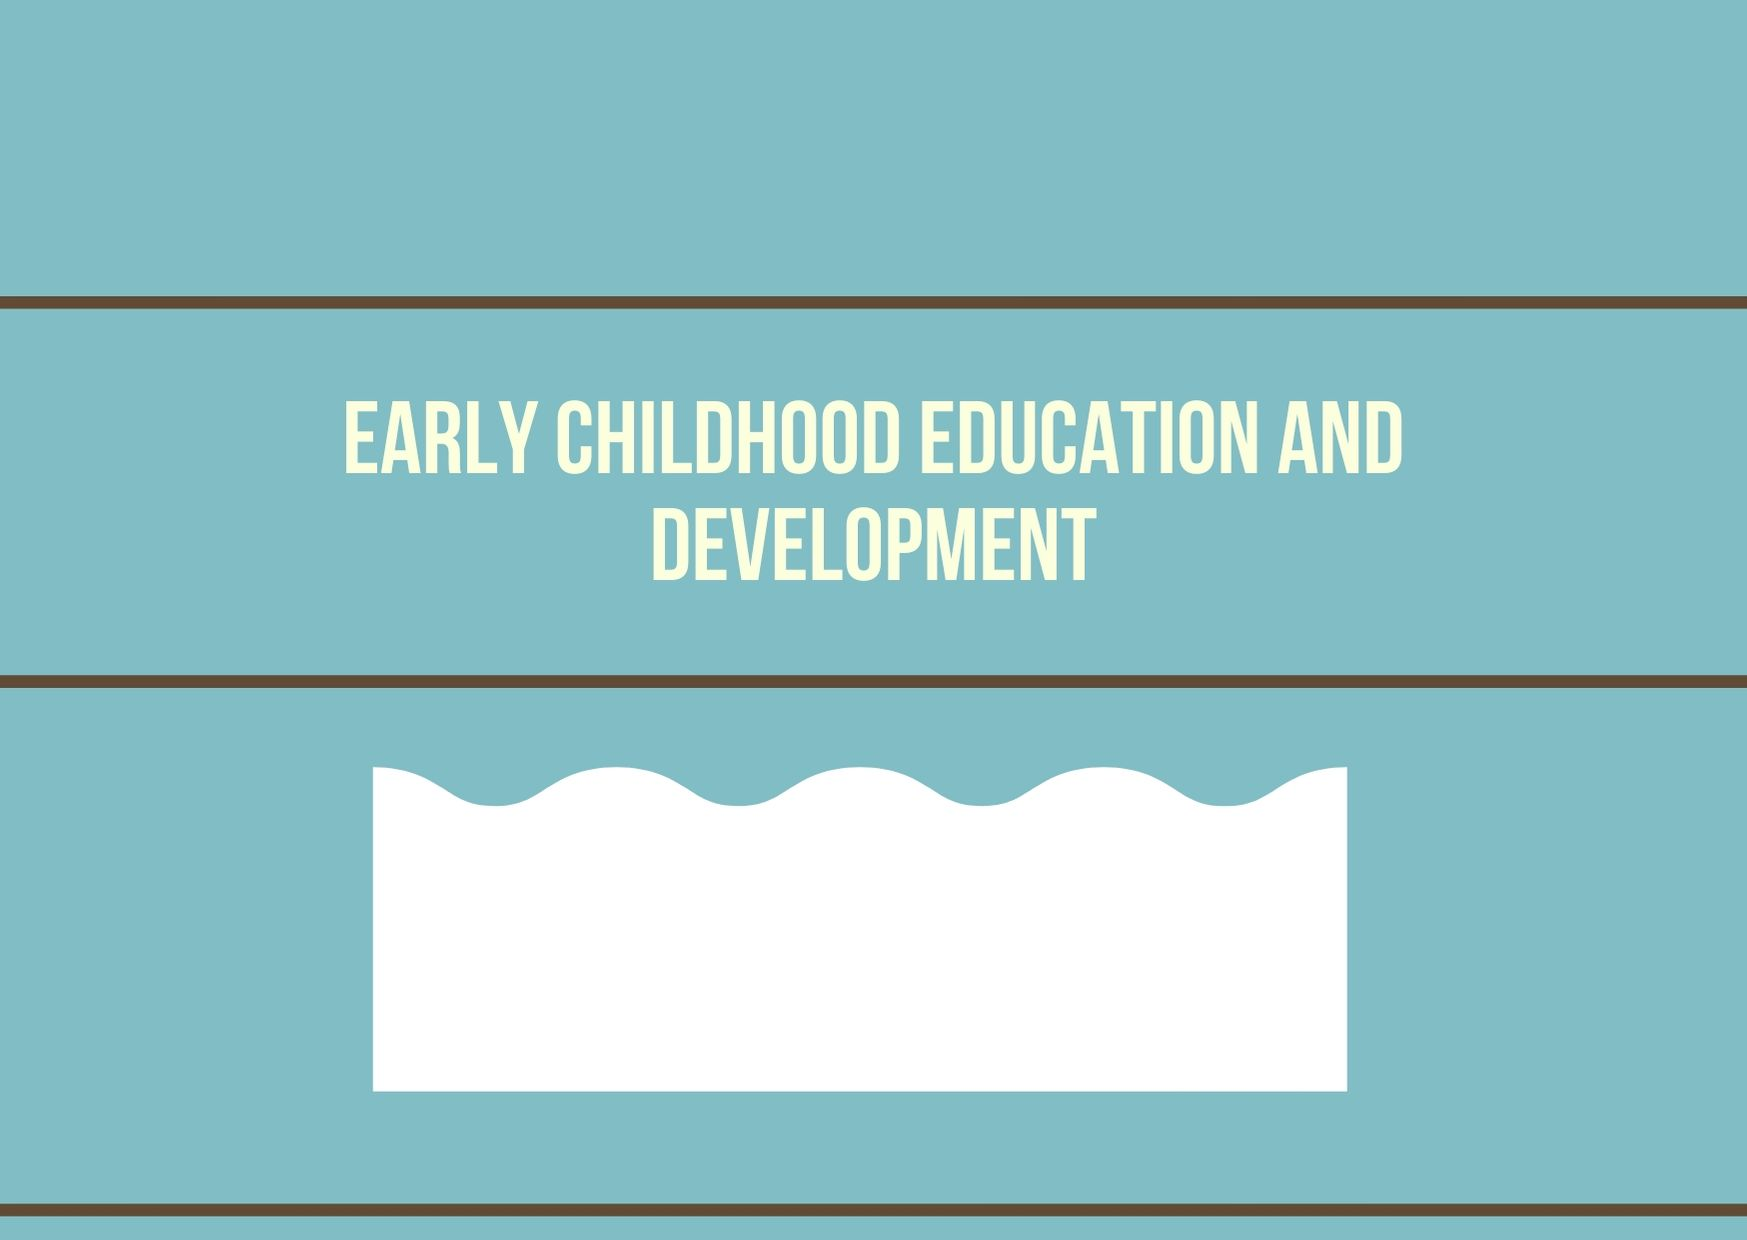 early_childhood_education_and_development.jpg